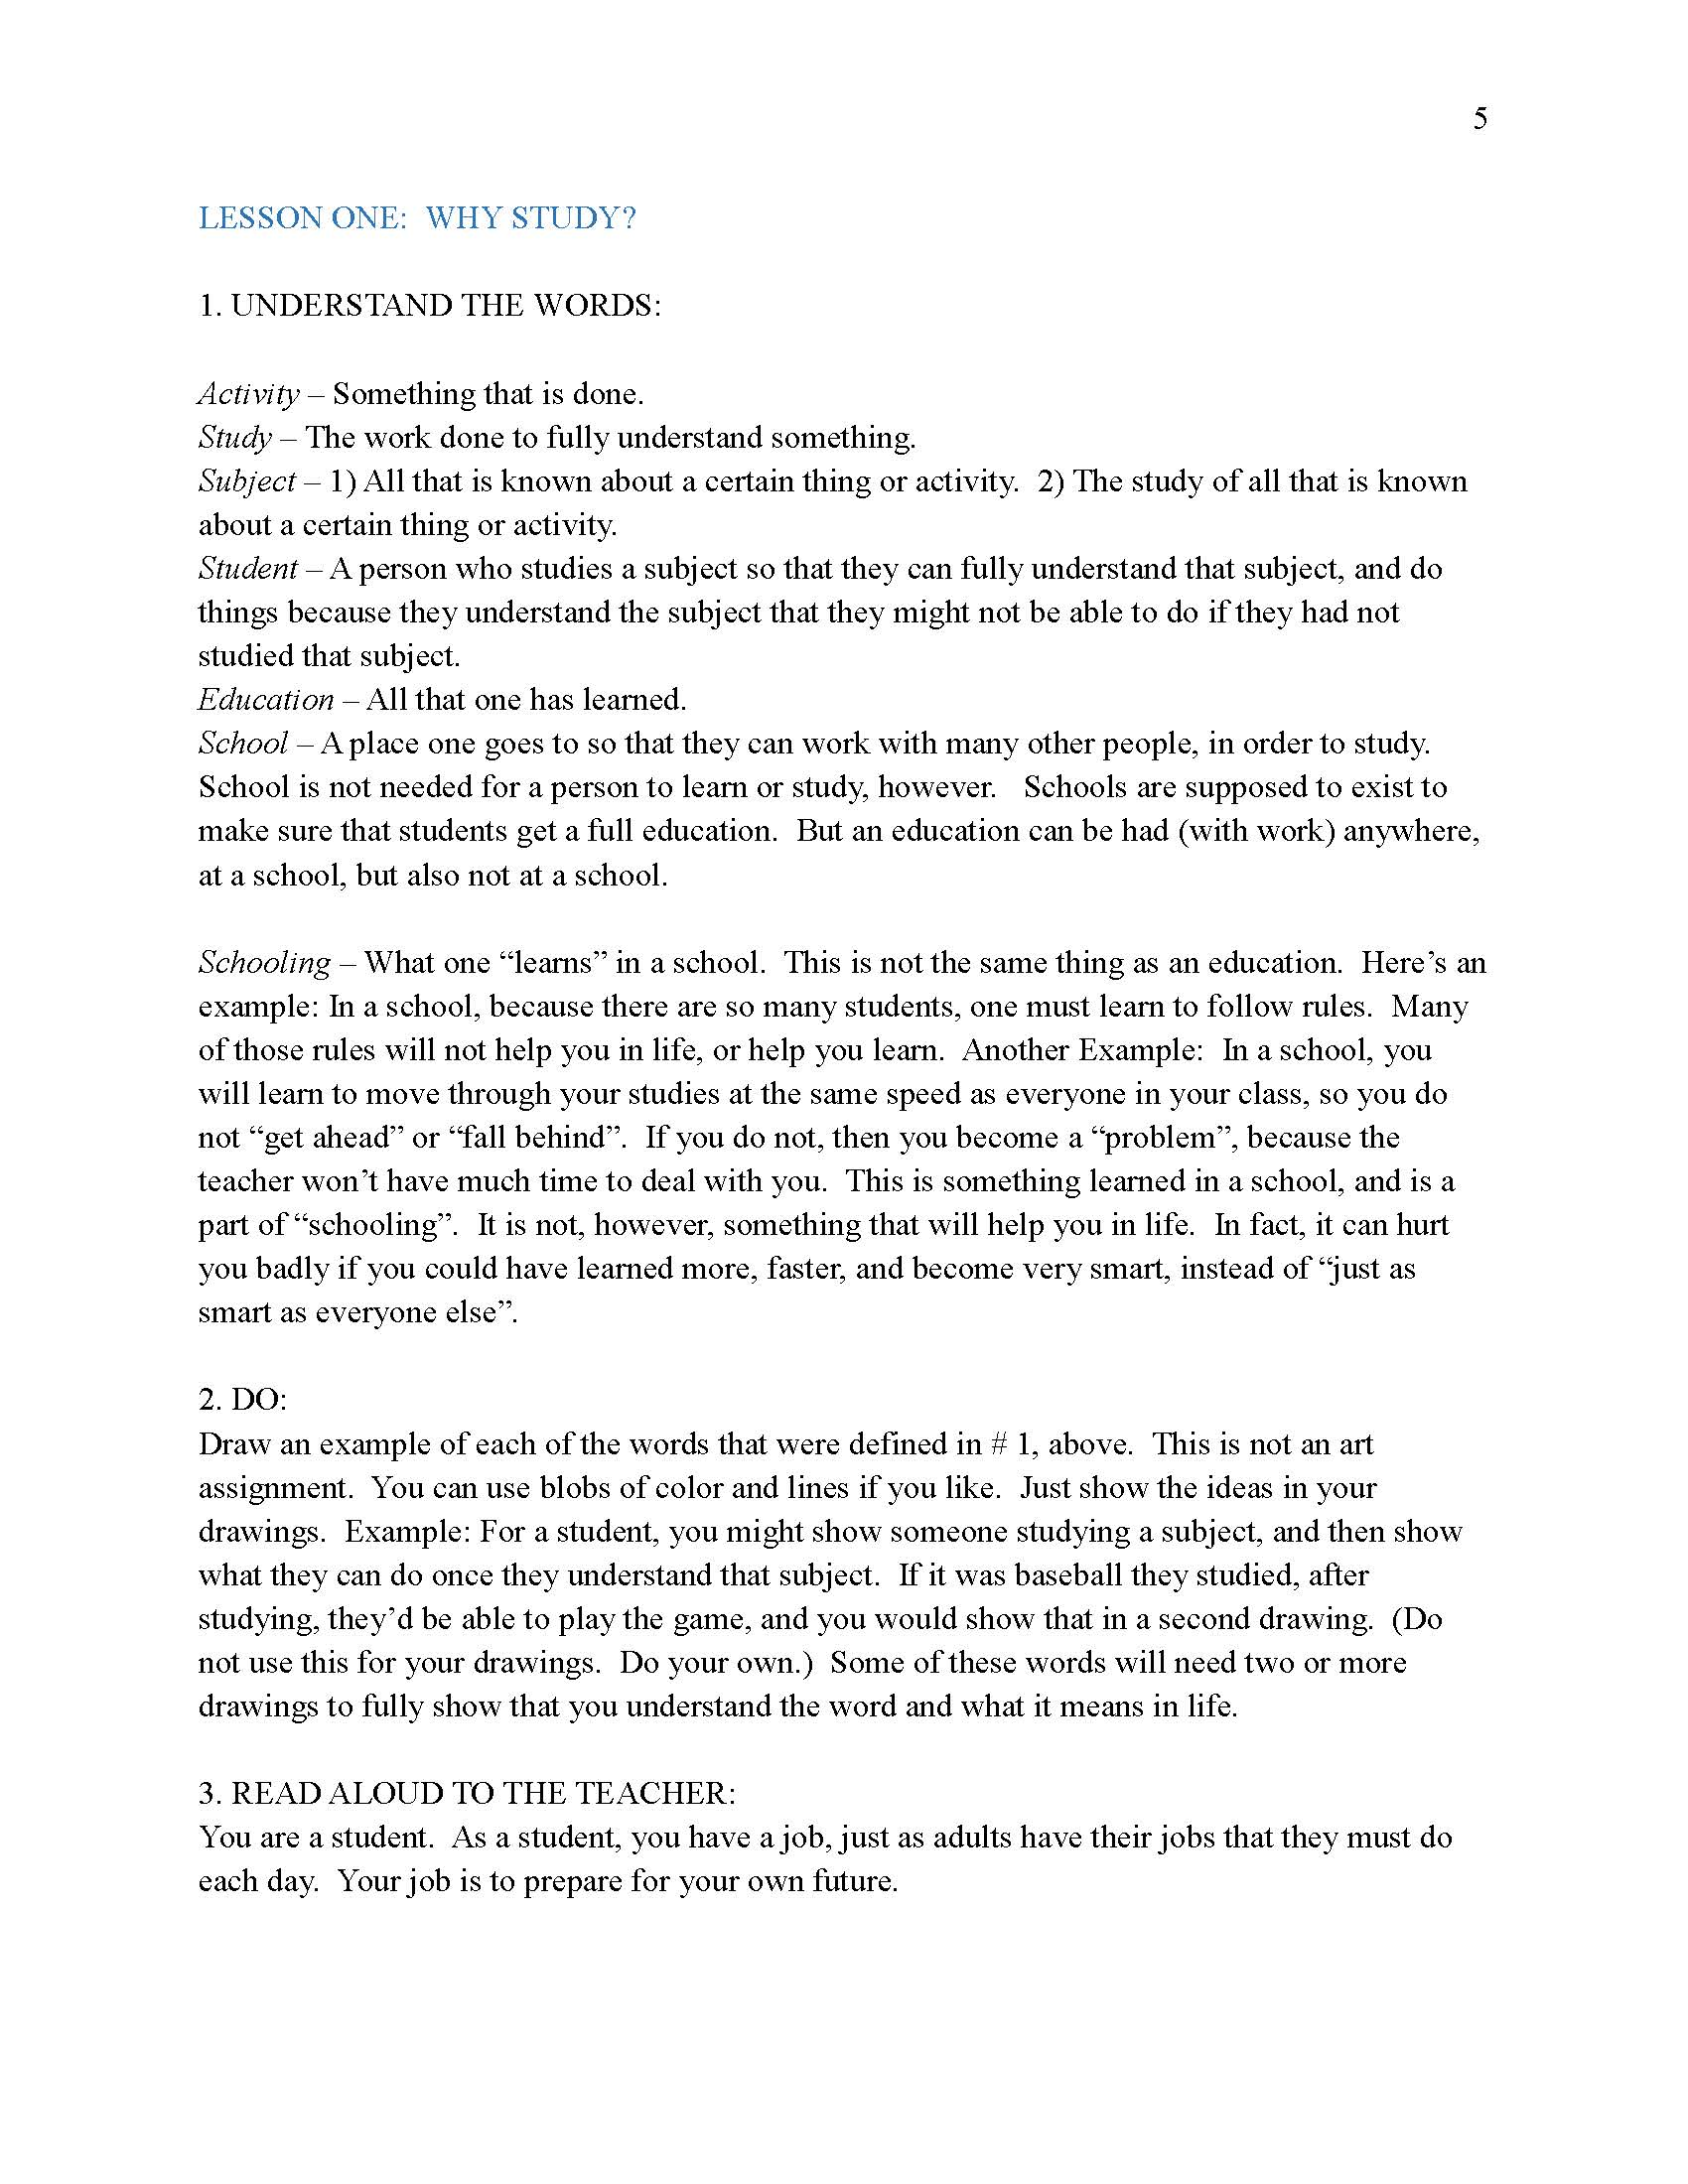 Step 2 Study & Life Skills 7 - What You Will_Page_06.jpg